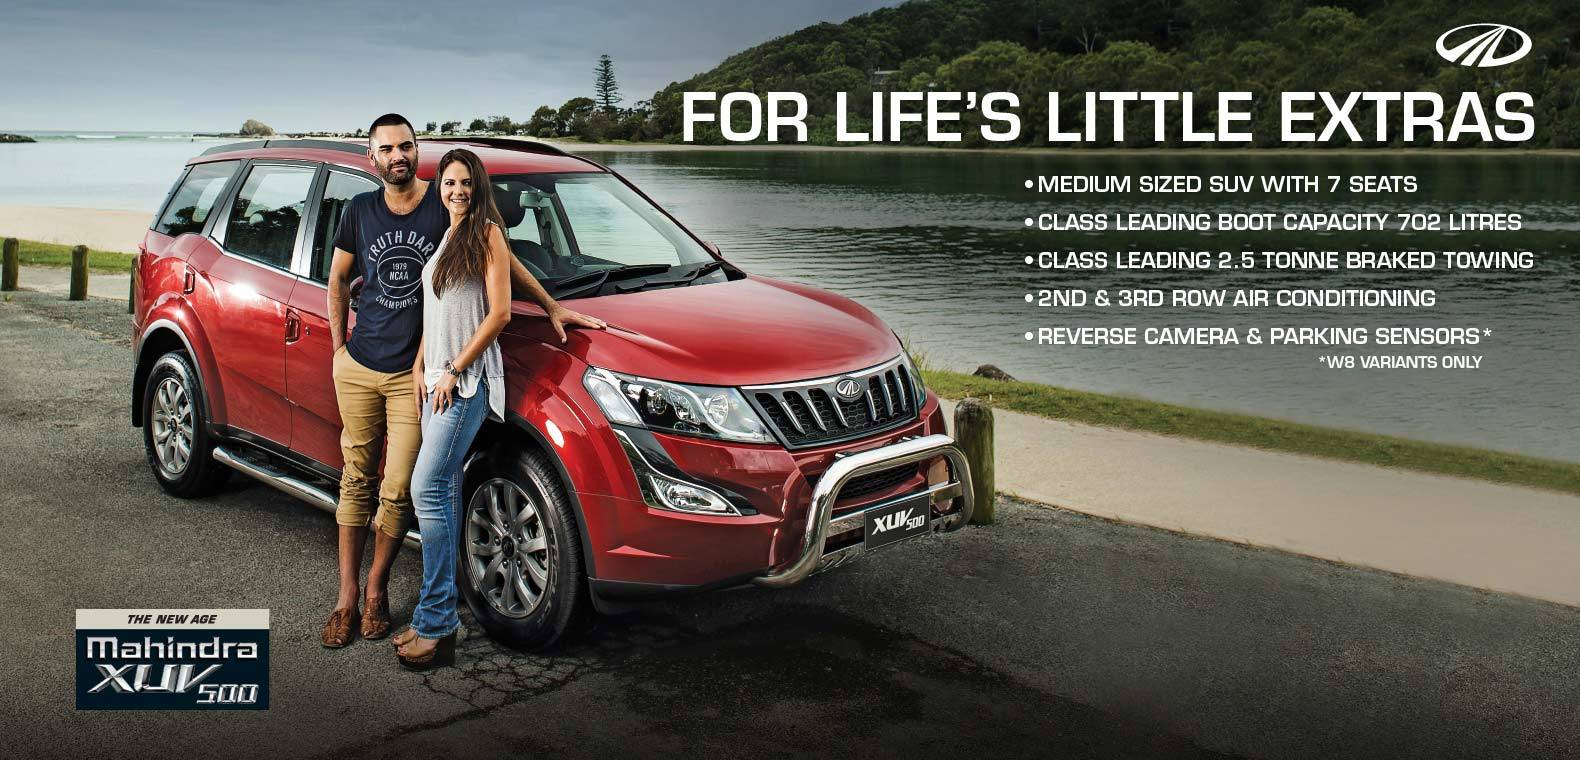 xuv500-endorsement-image